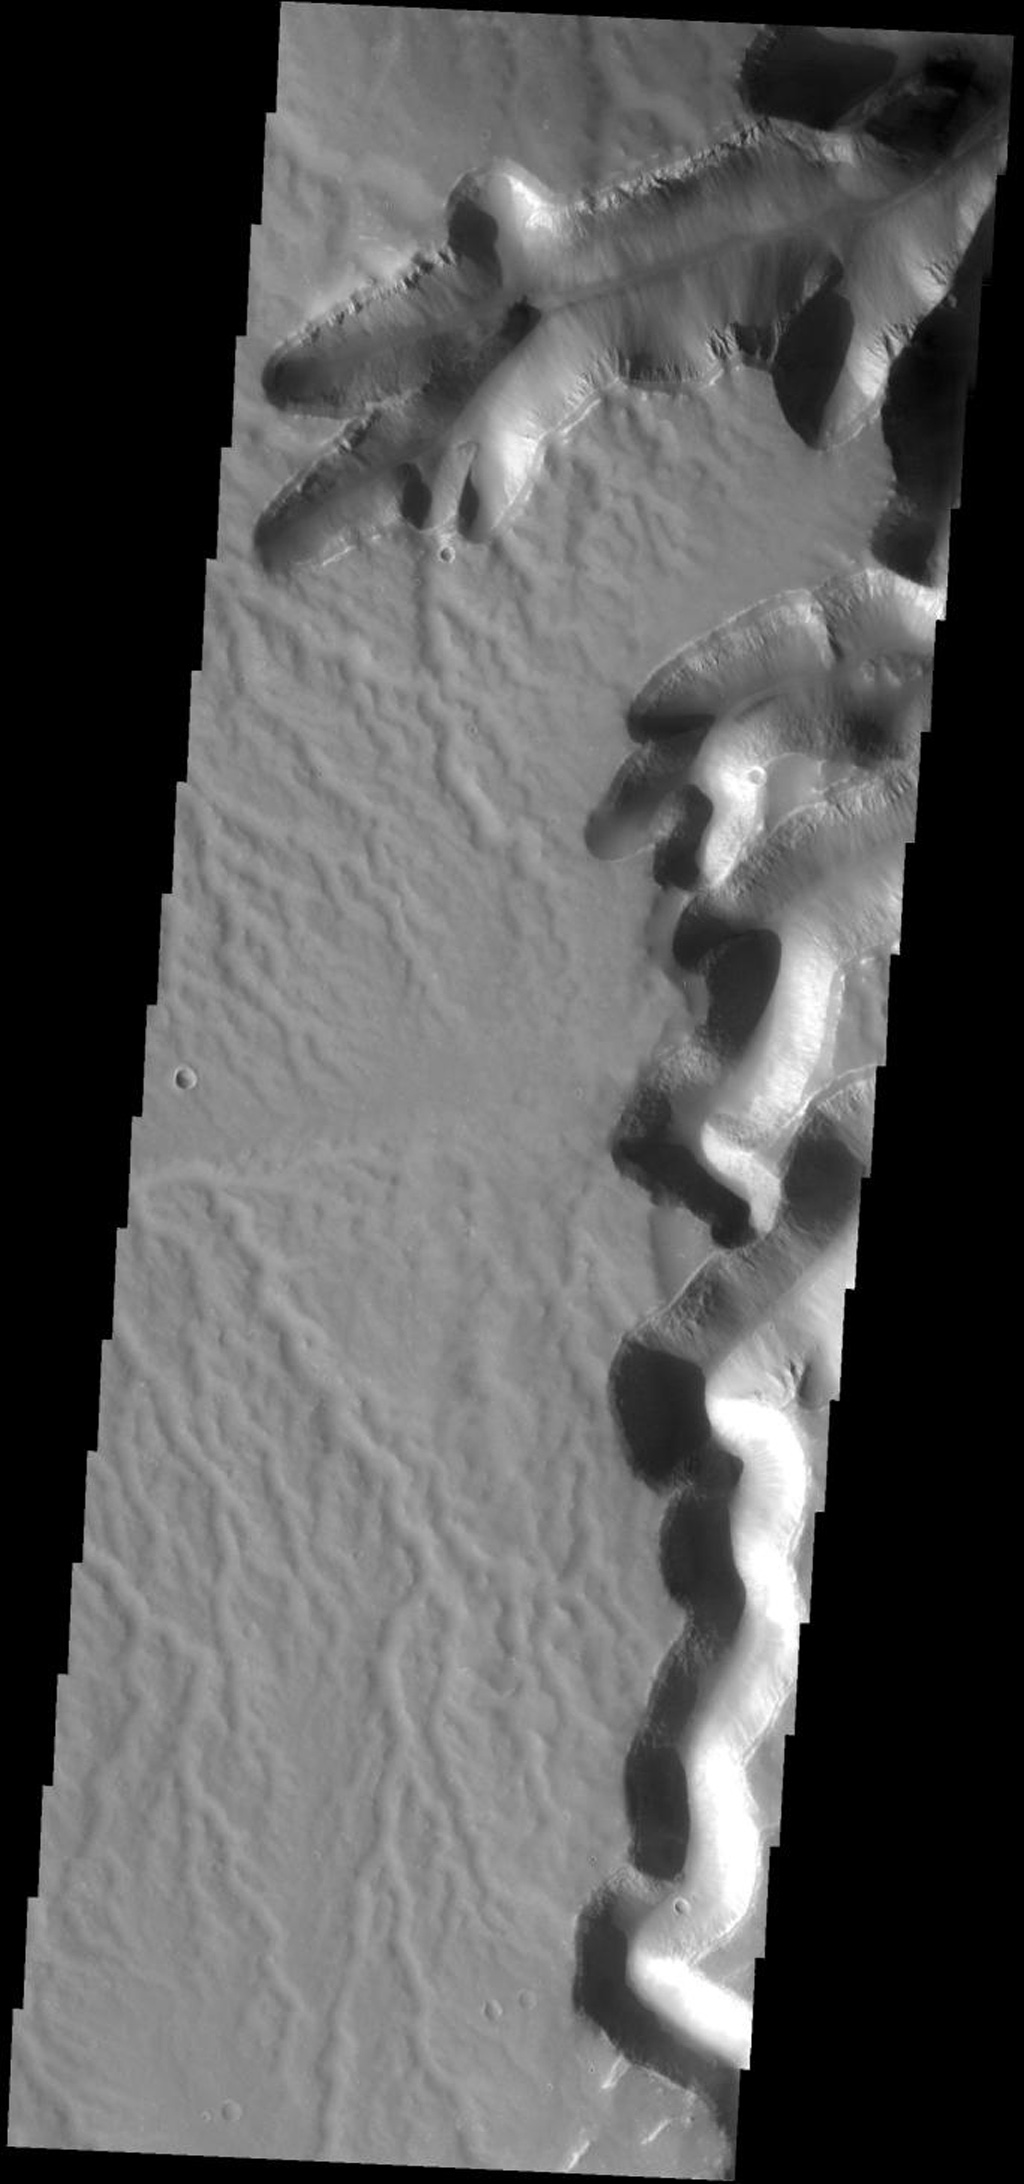 At the southern end of Echus Cansma on Mars this dissected surface and mega-gullies occur as seen by NASA's 2001 Mars Odyssey spacecraft.